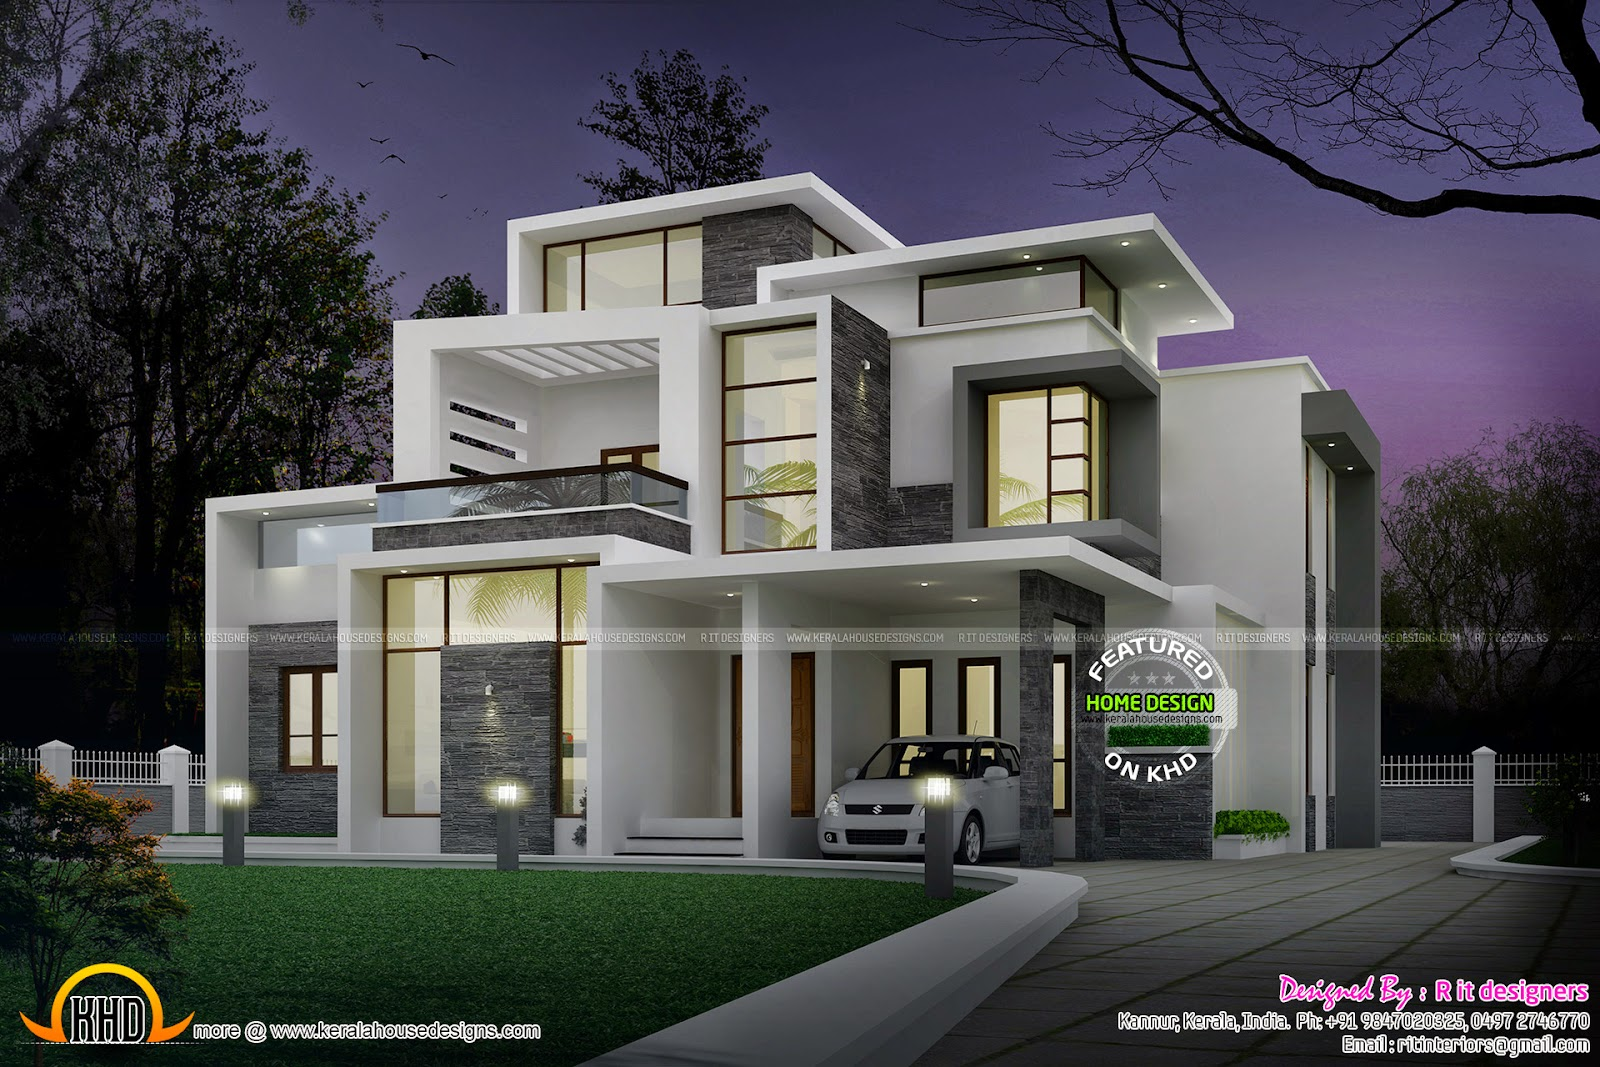 Grand contemporary home design kerala home design and for Contemporary homes images